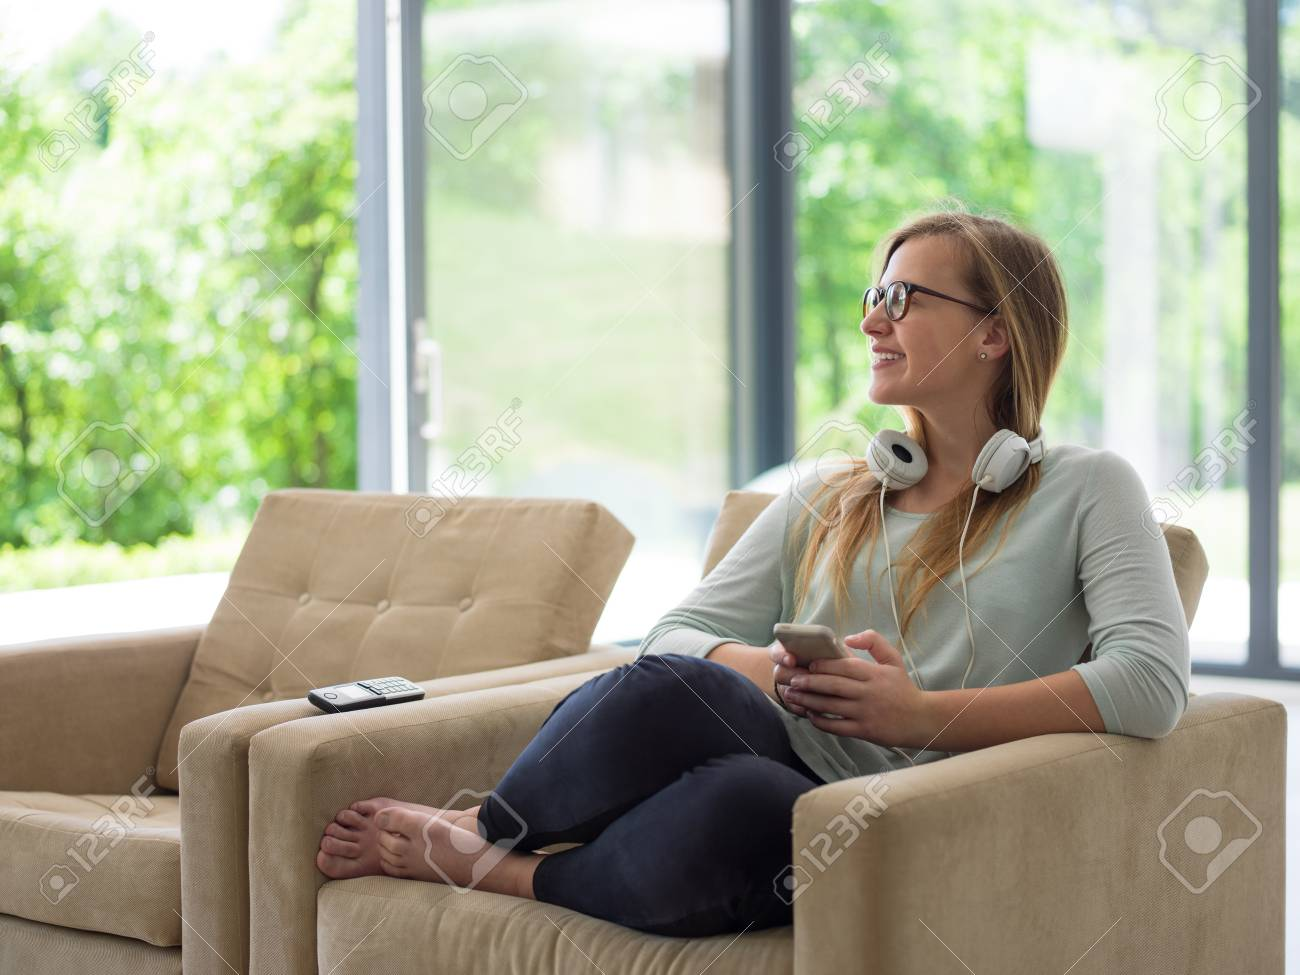 Stock Photo   Young Happy Woman Sitting On Sofa And Using Mobile Phone At Luxury  Home